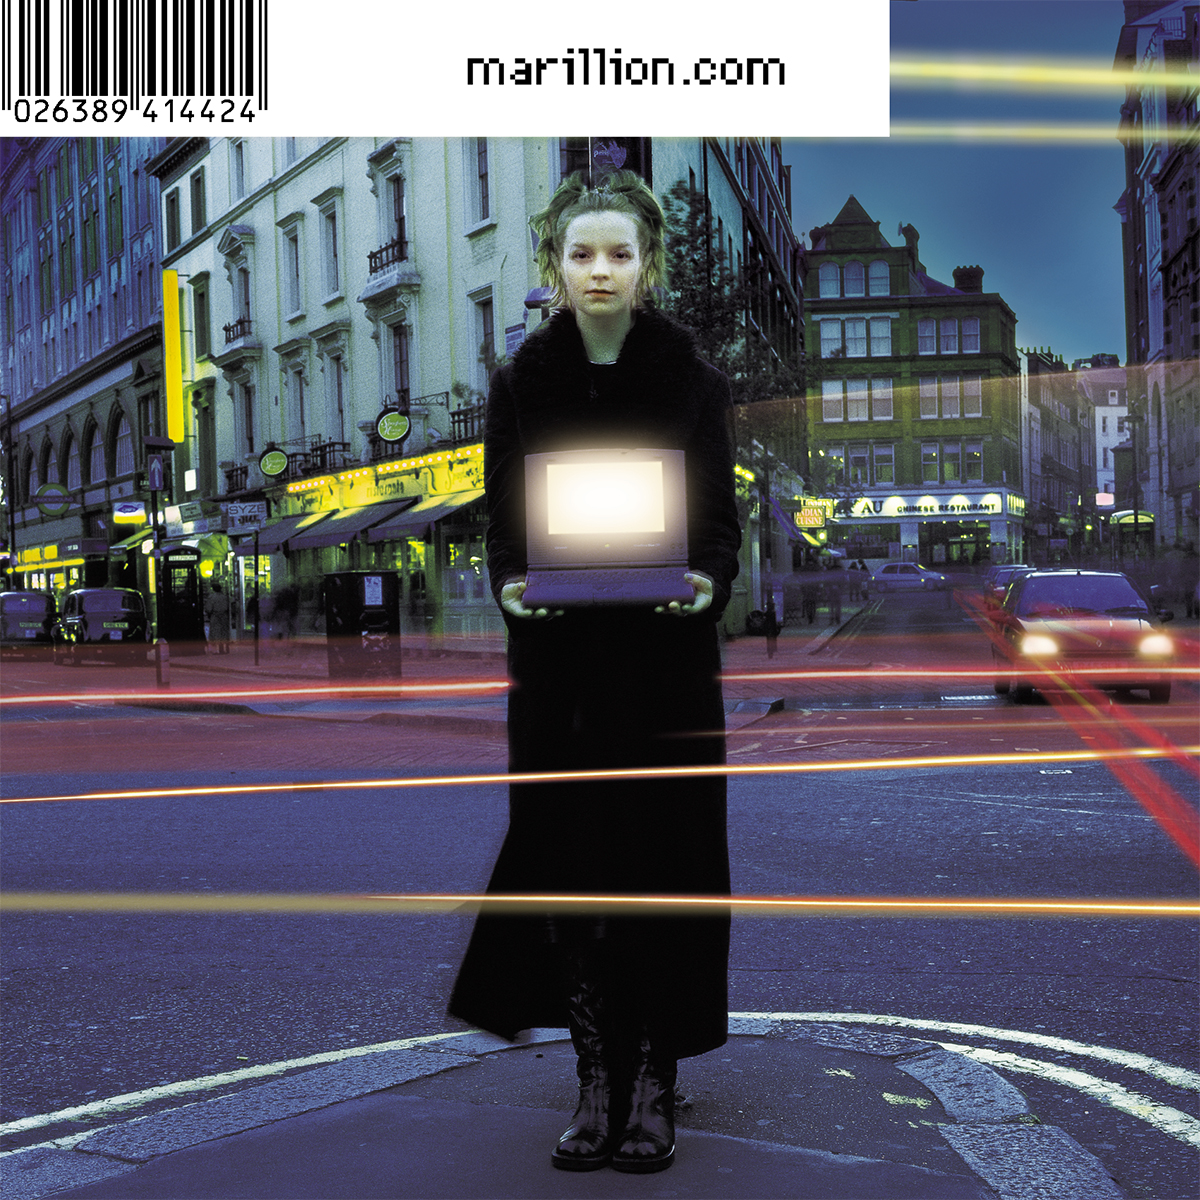 MARILLION.COM 1CD DIGIPACK VERSION